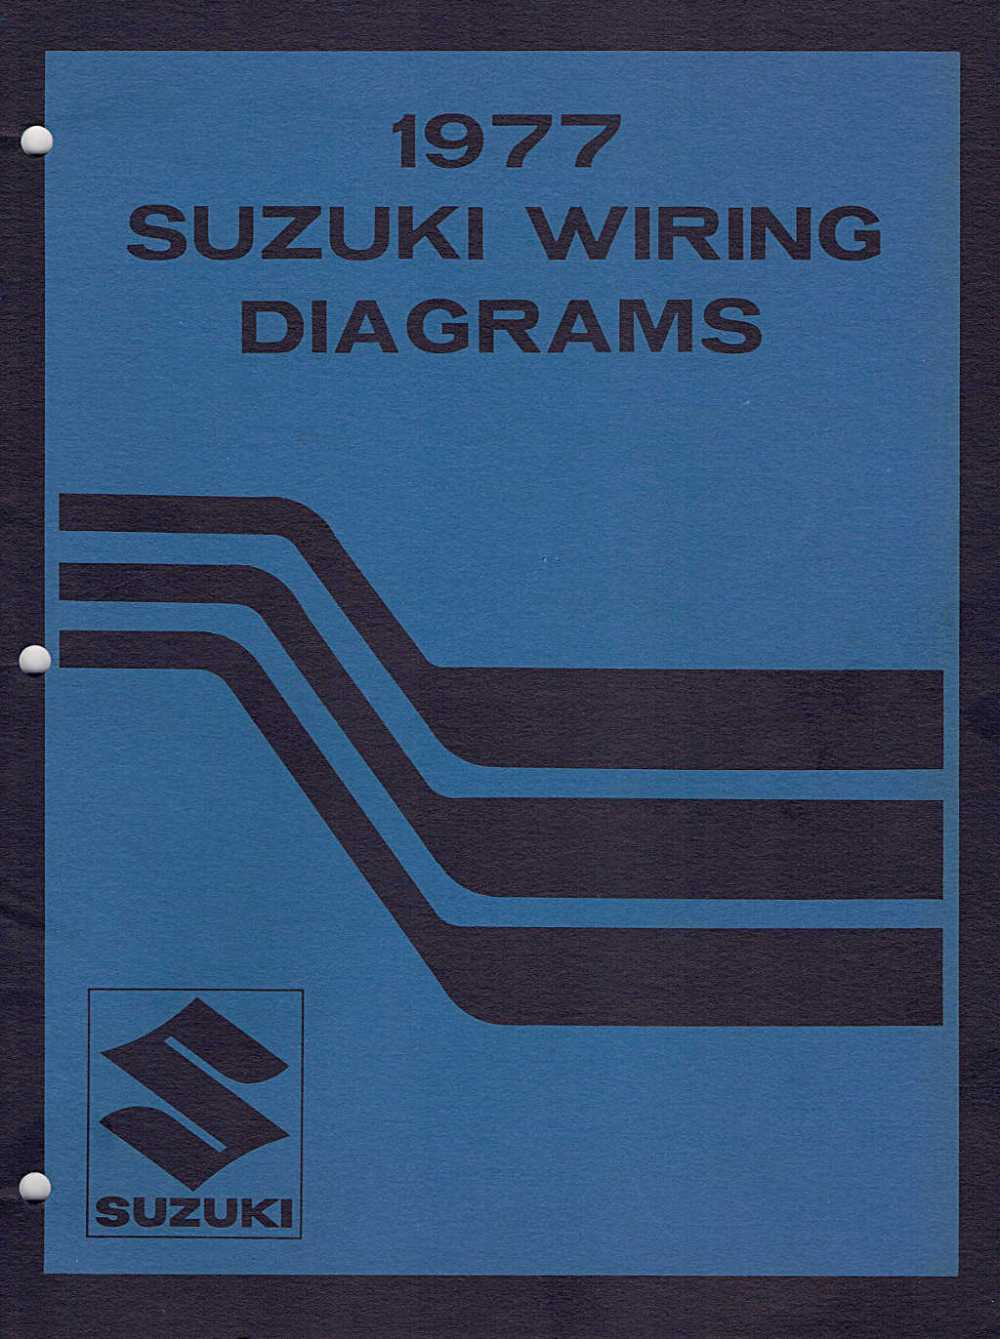 medium resolution of this is a selection of wiring diagrams that i have gathered together in one location just for ease of reference i don t sell them nor do i supply them for